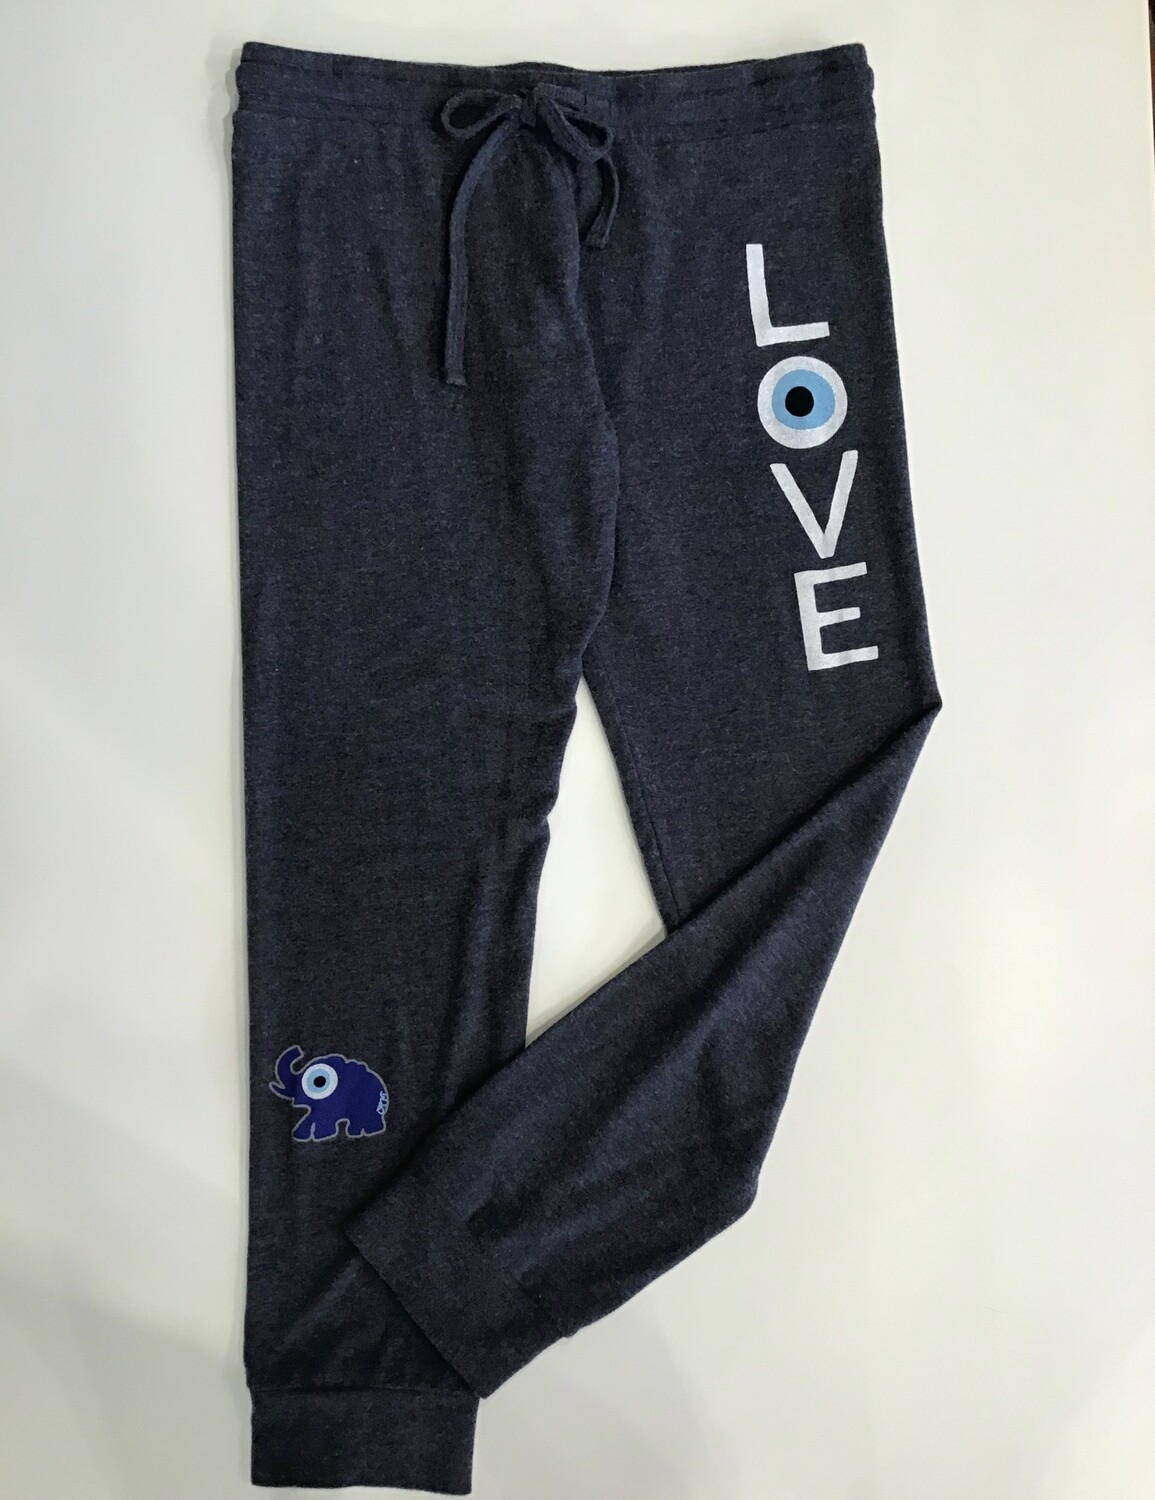 Evil eye love sweatpants